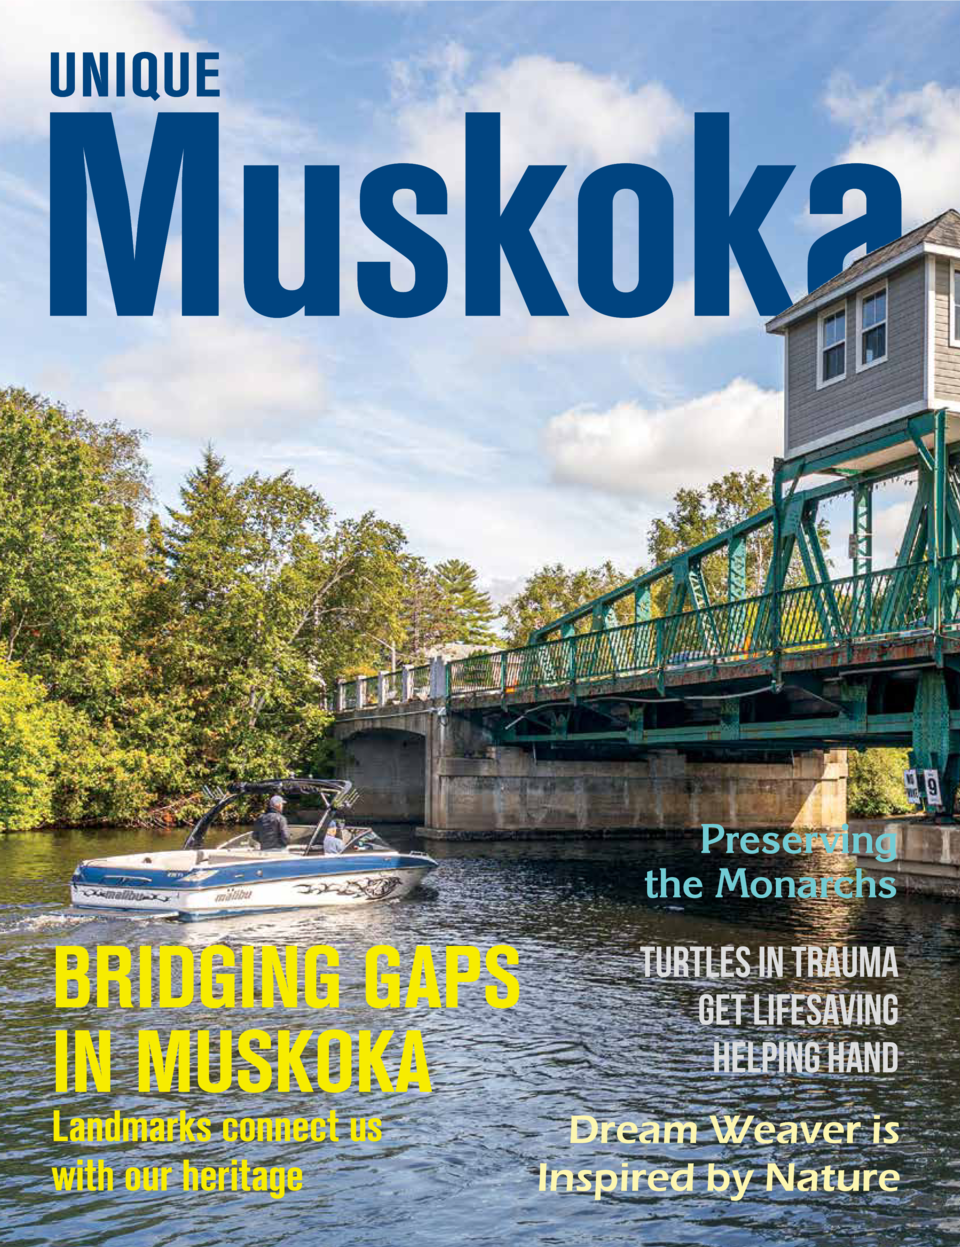 Preserving the Monarchs  BRIDGING GAPS IN MUSKOKA Landmarks connect us with our heritage  TURTLES IN TRAUMA GET LIFESAVING...